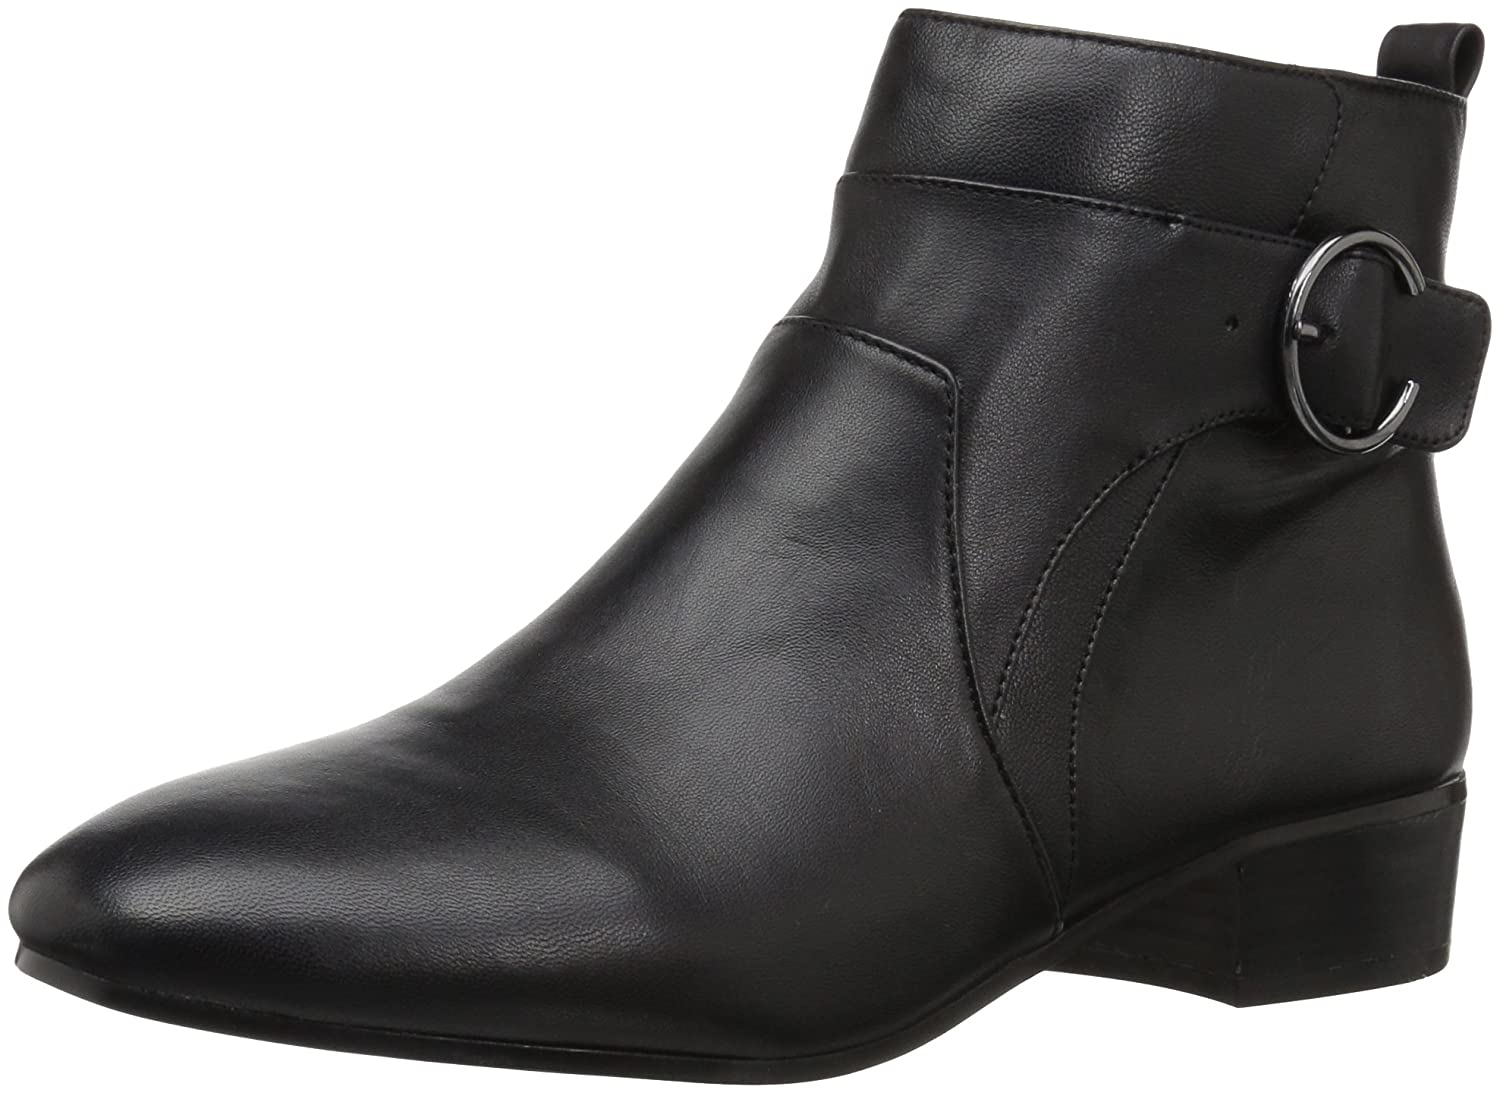 Nine West Women's Odgerel Leather Ankle Boot B071VND2XL 7.5 B(M) US|Black Leather